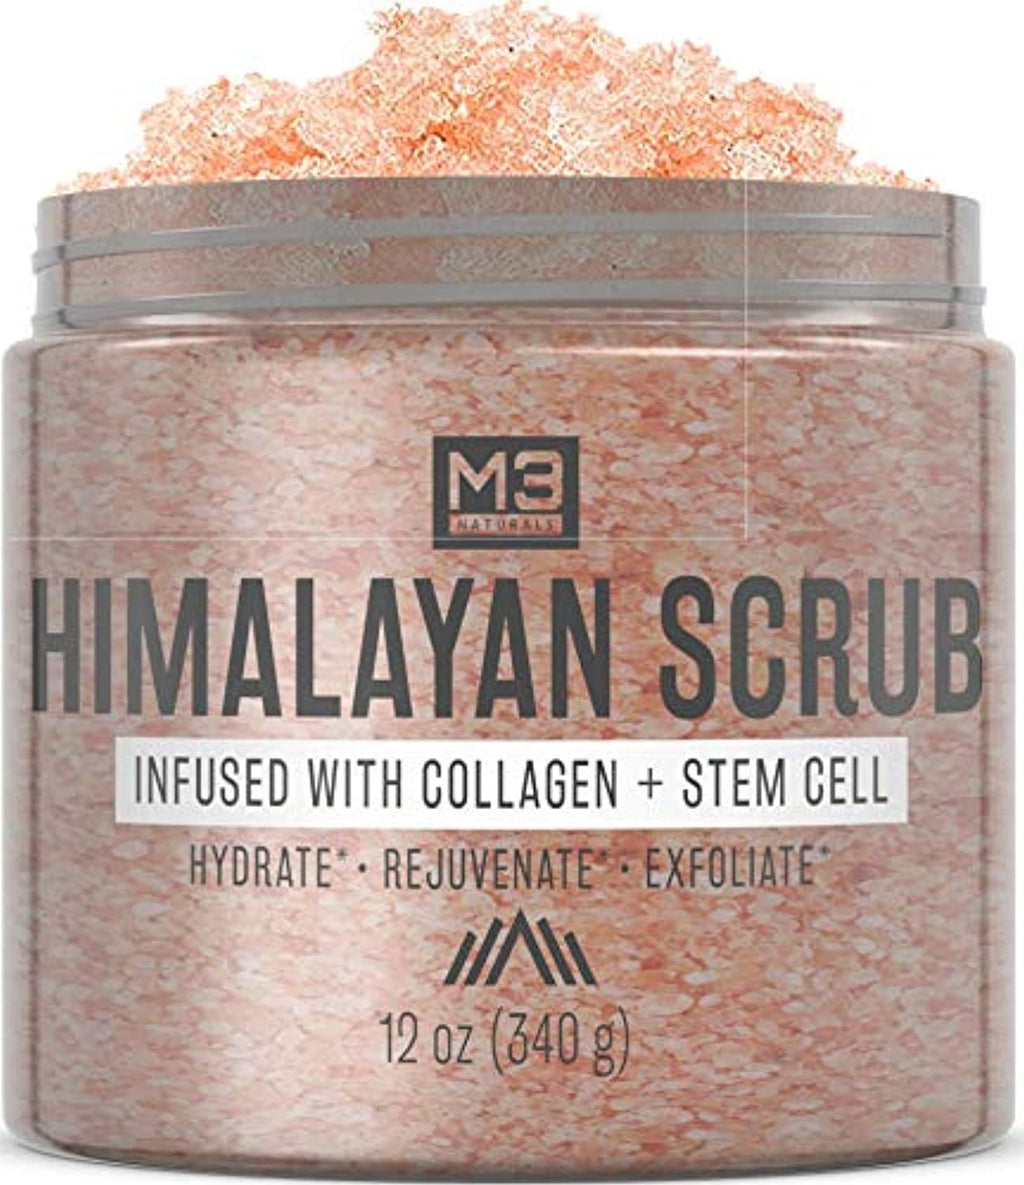 Himalayan Salt Scrub Infused Exfoliating Body Souffle